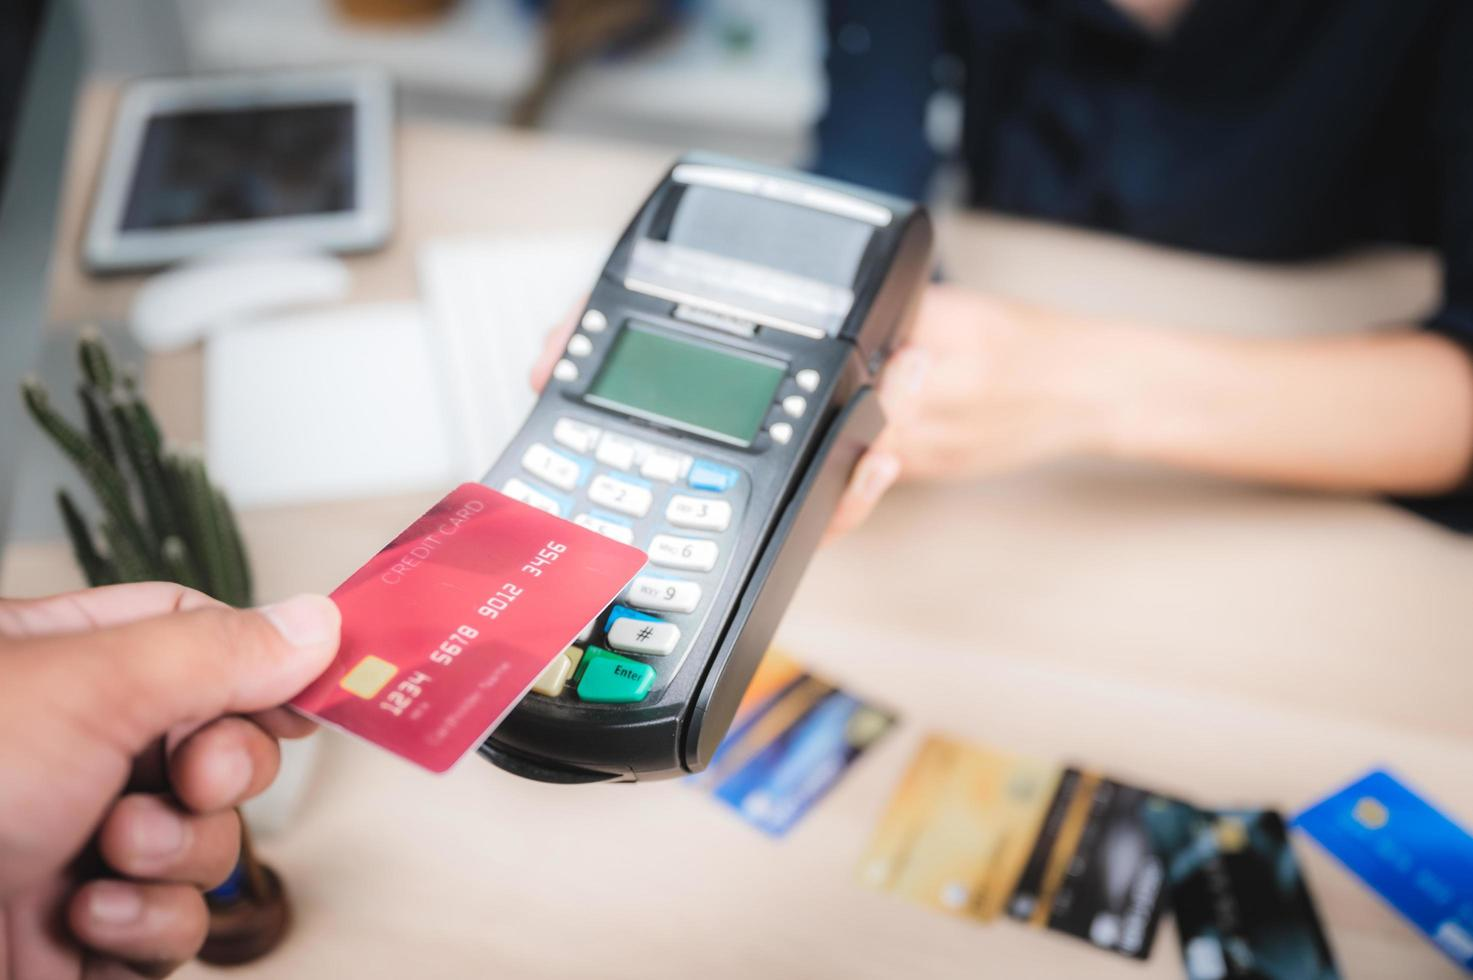 Consumer is paying for service with credit card  photo